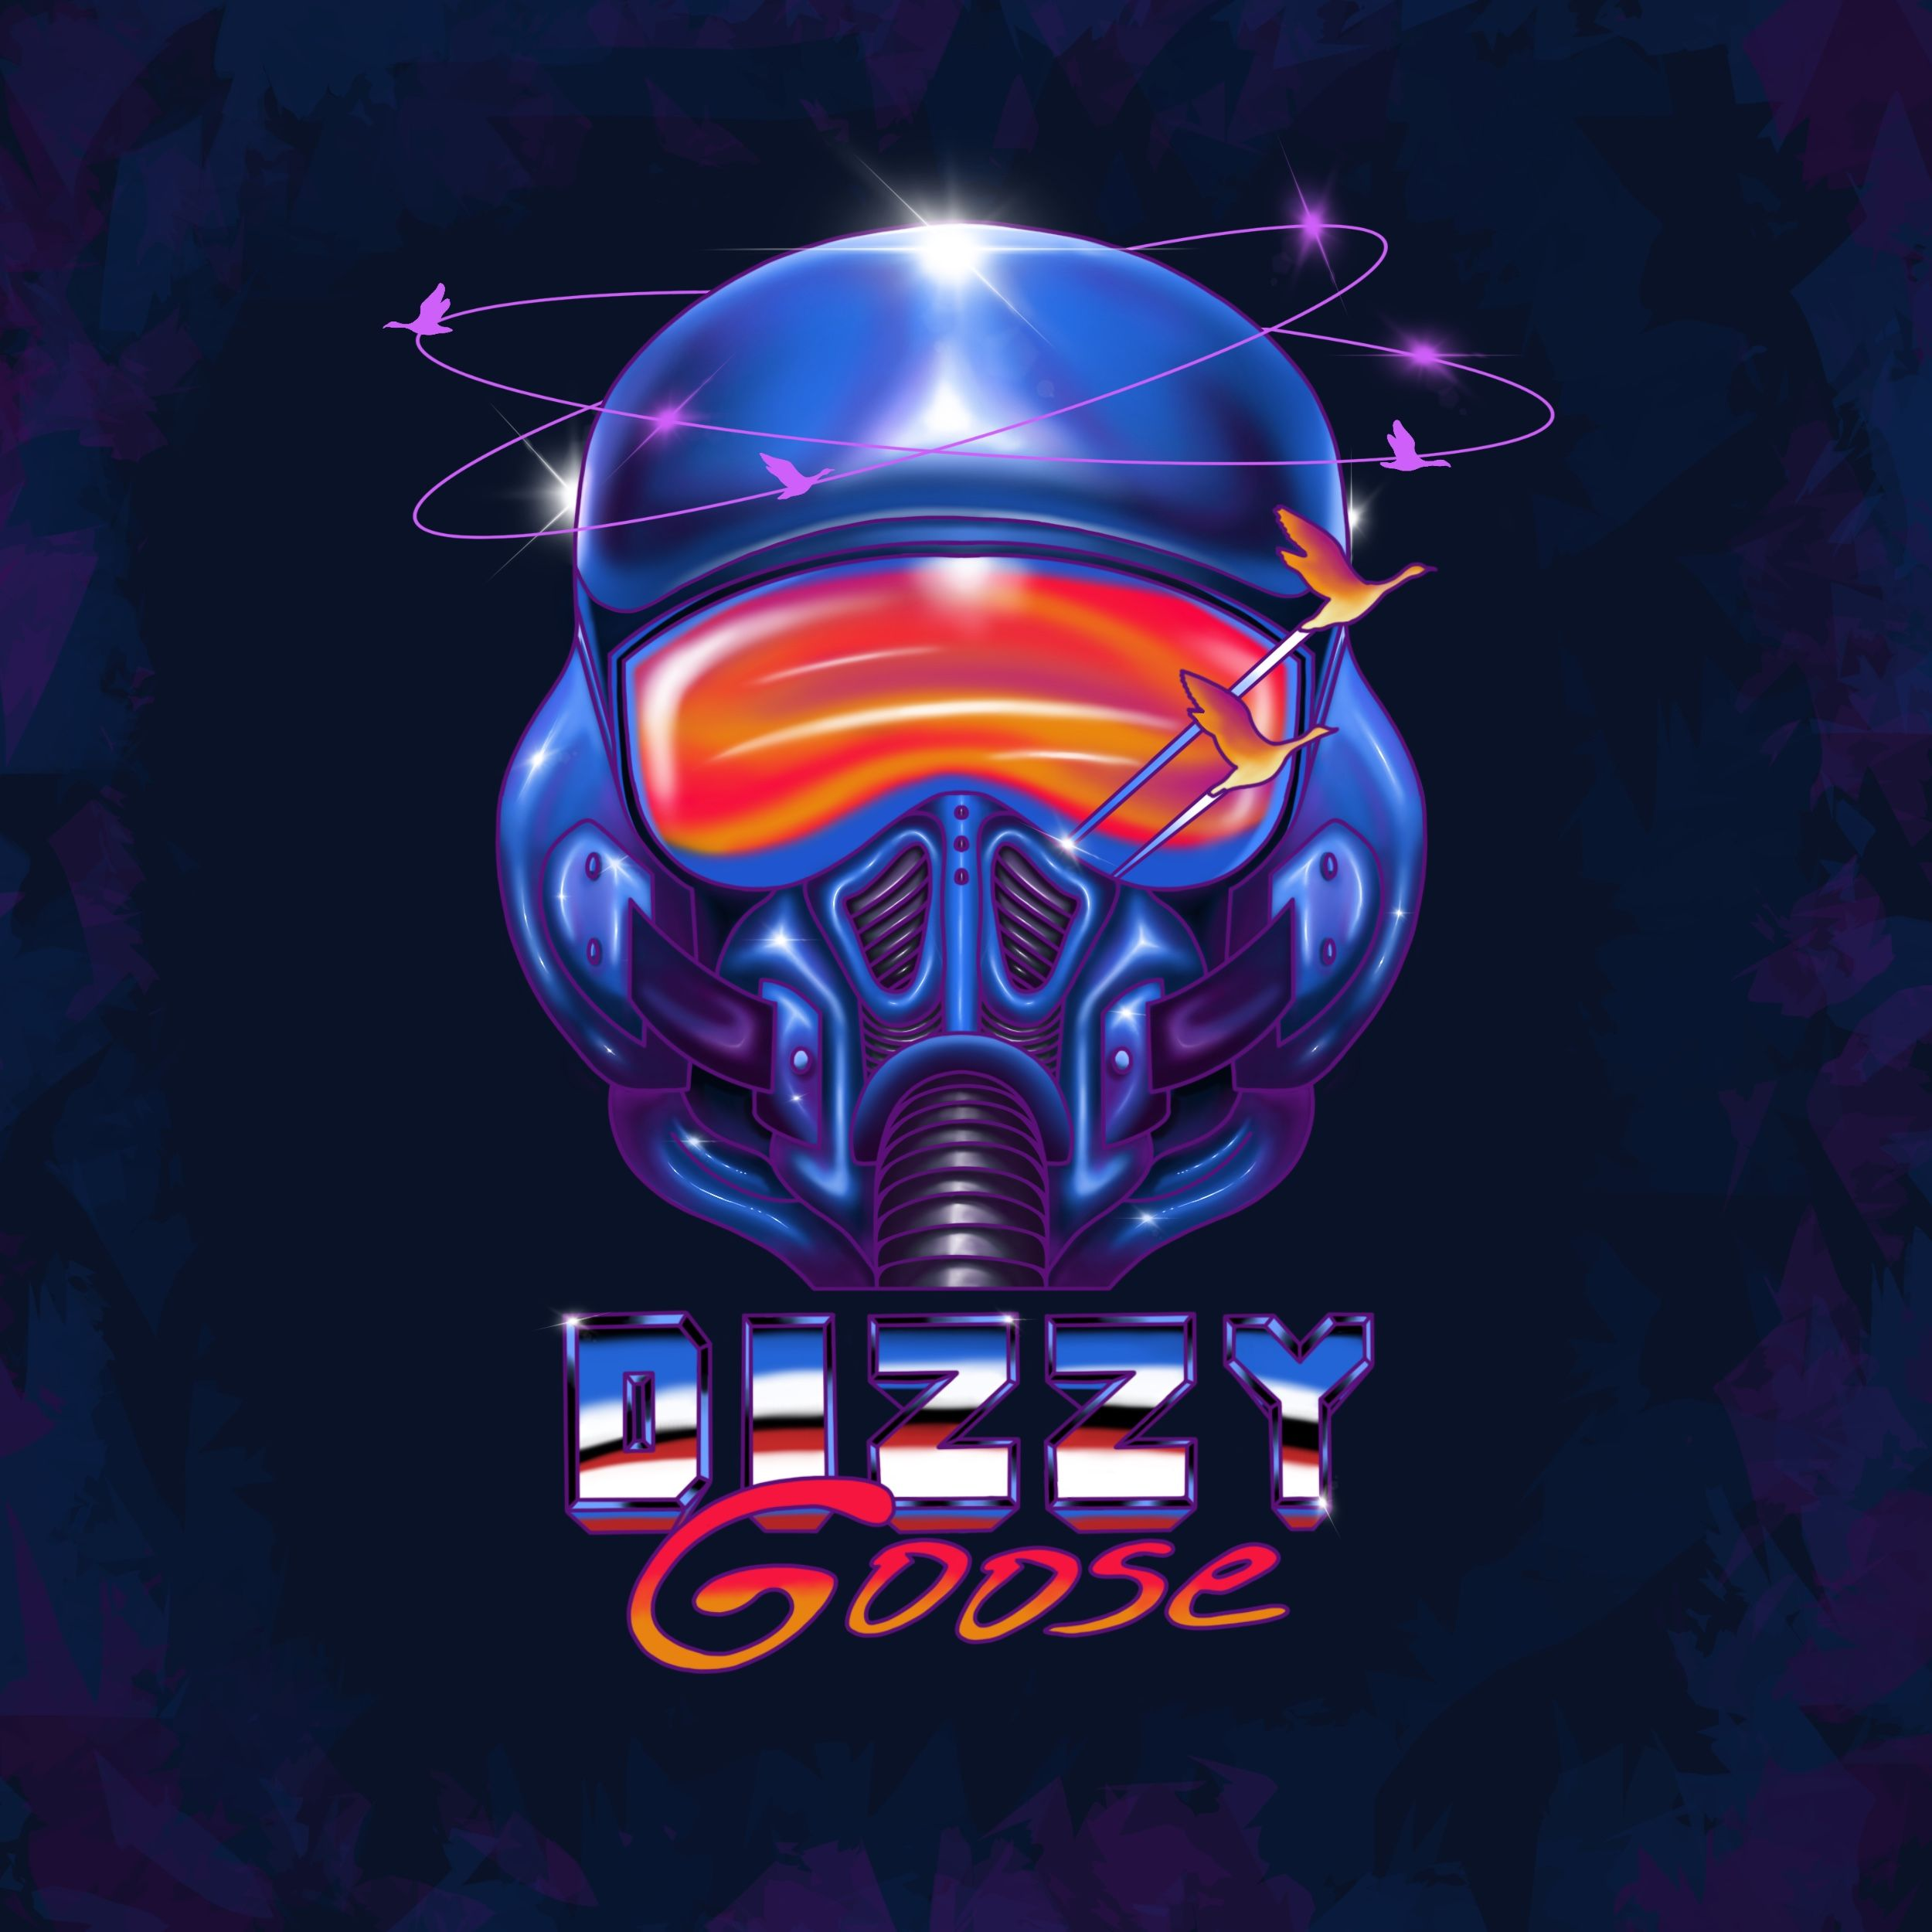 Gaming logo for Dizzy Goose, one of the best Battlefield